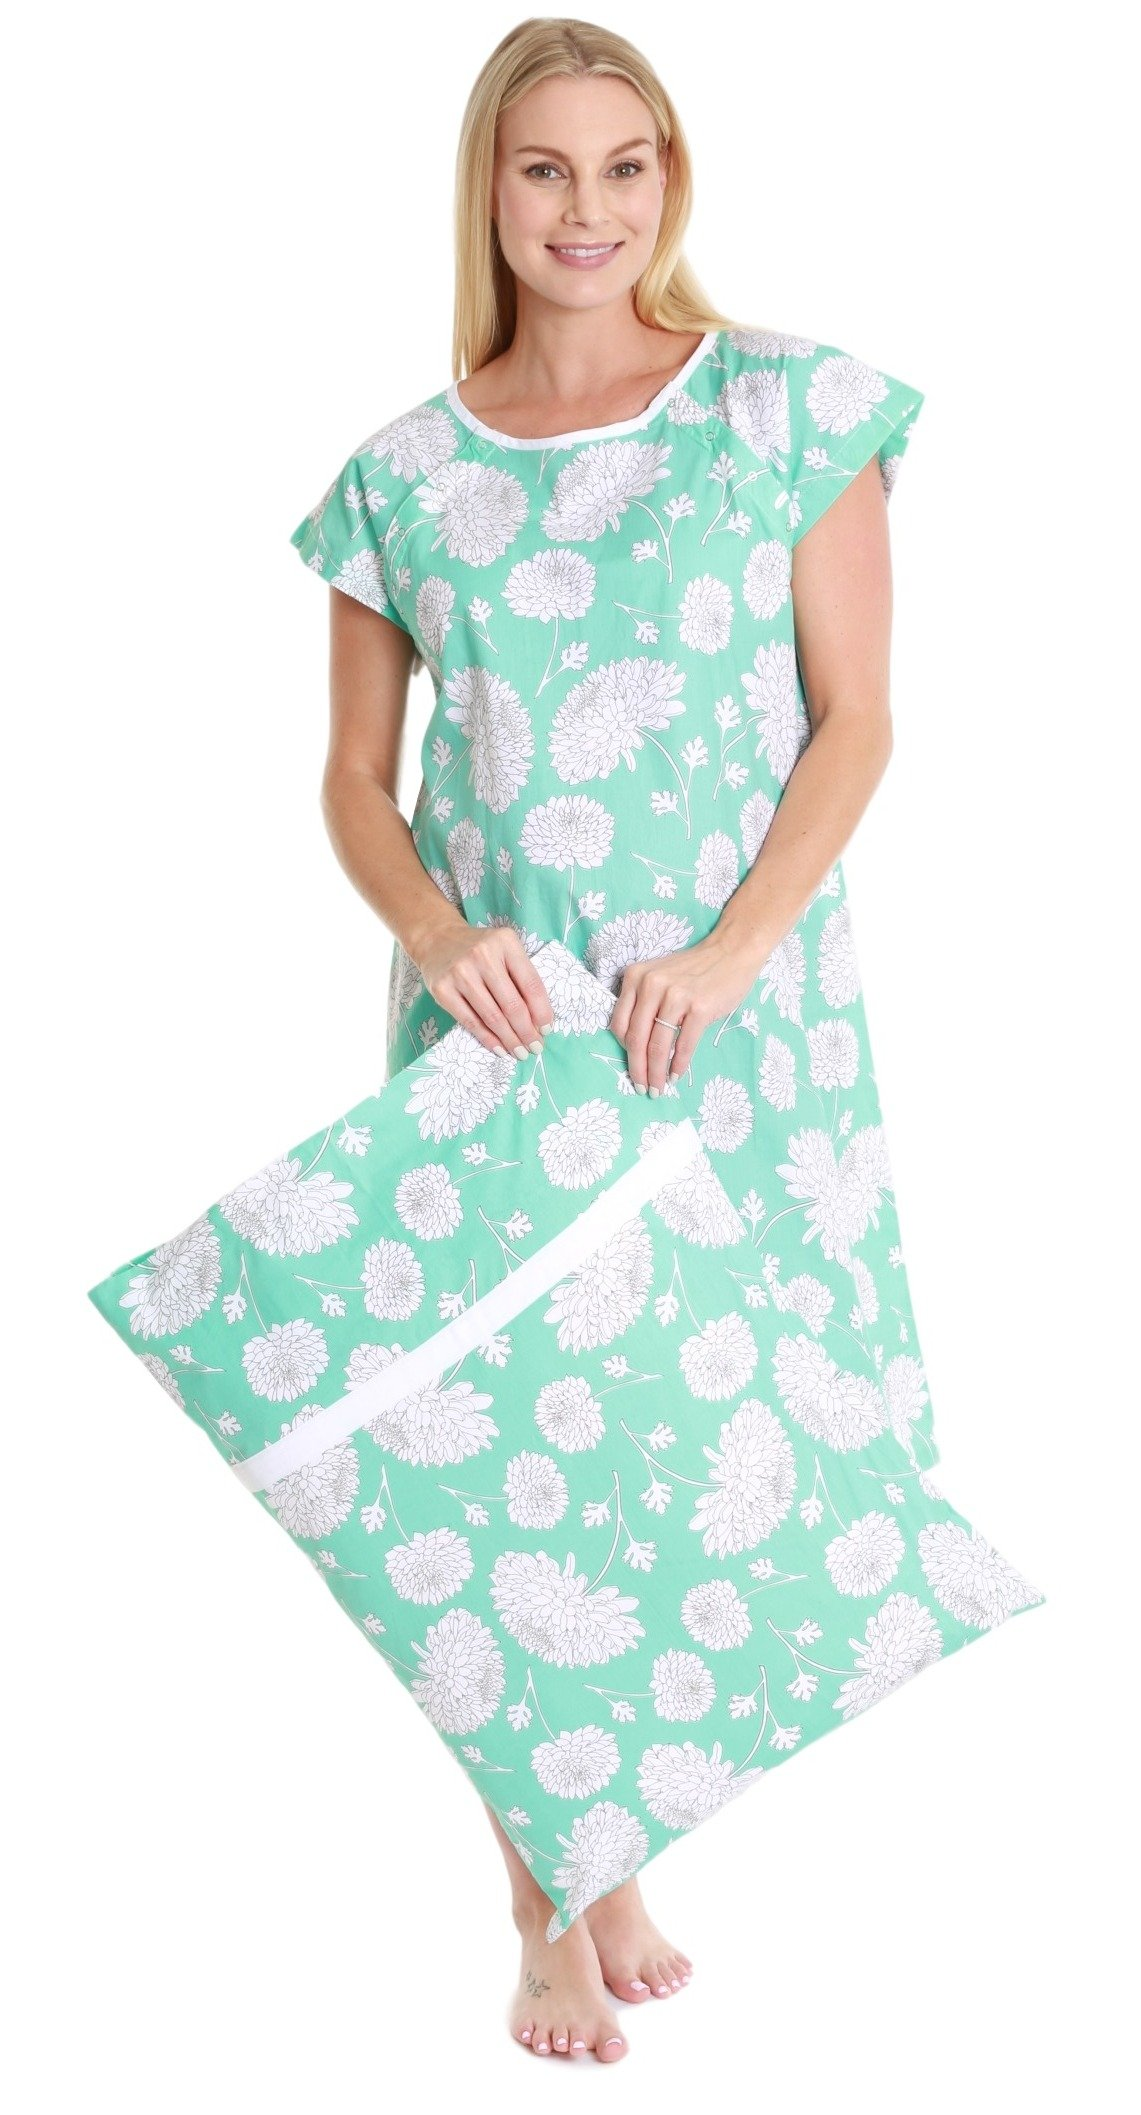 f3f198197cb Baby Be Mine Gownies - Delivery Maternity Hospital Gown Labor Kit  (Small Medium pre